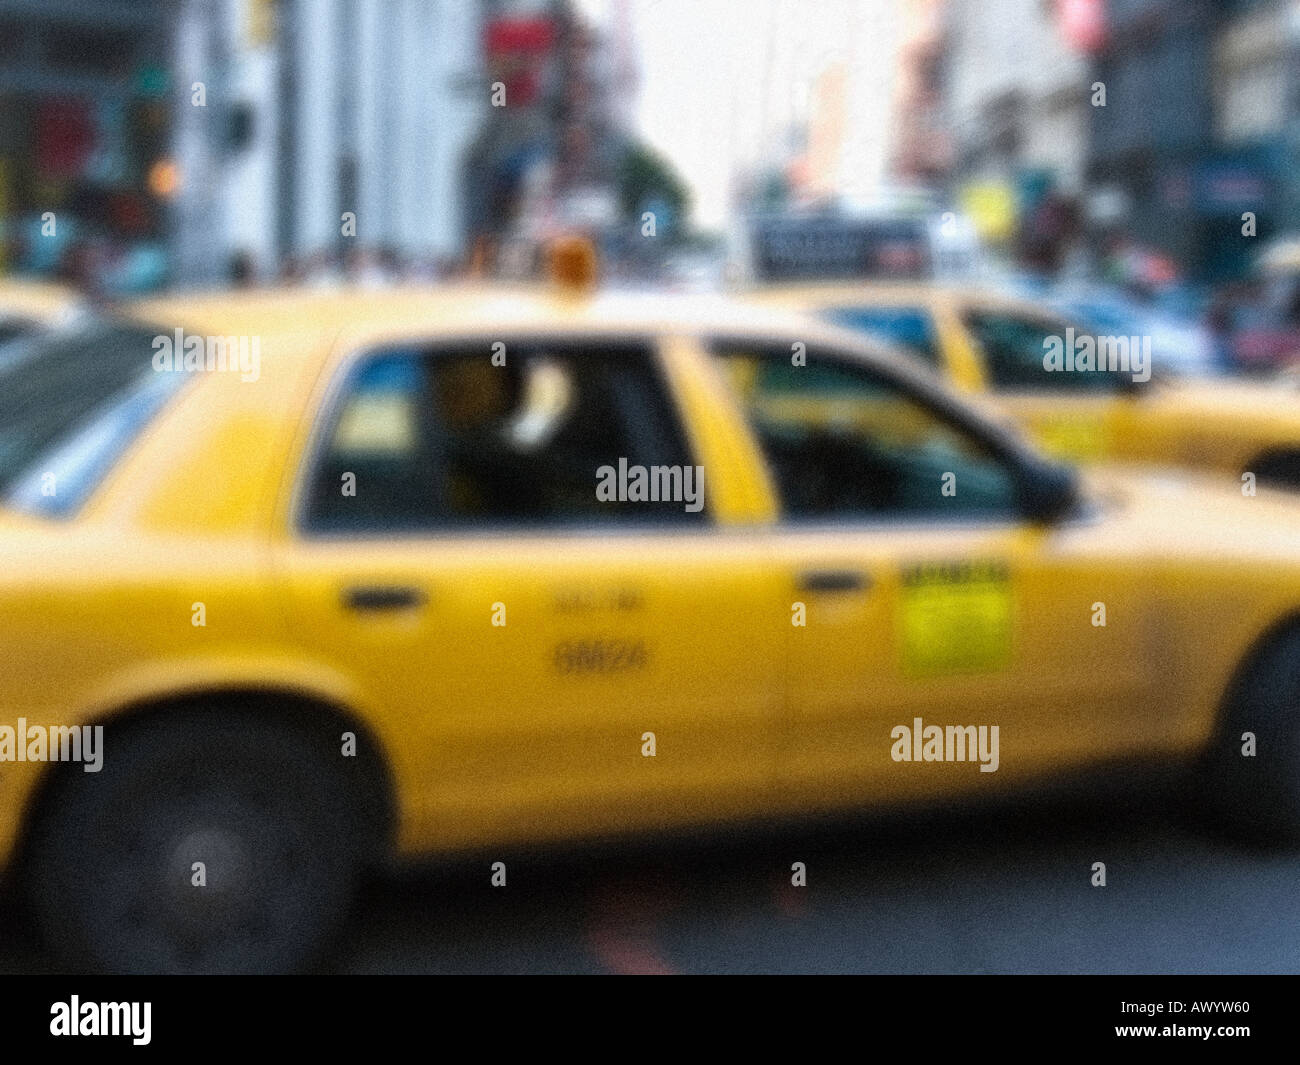 Chequered Effect Stock Photos Chequered Effect Stock Images Alamy